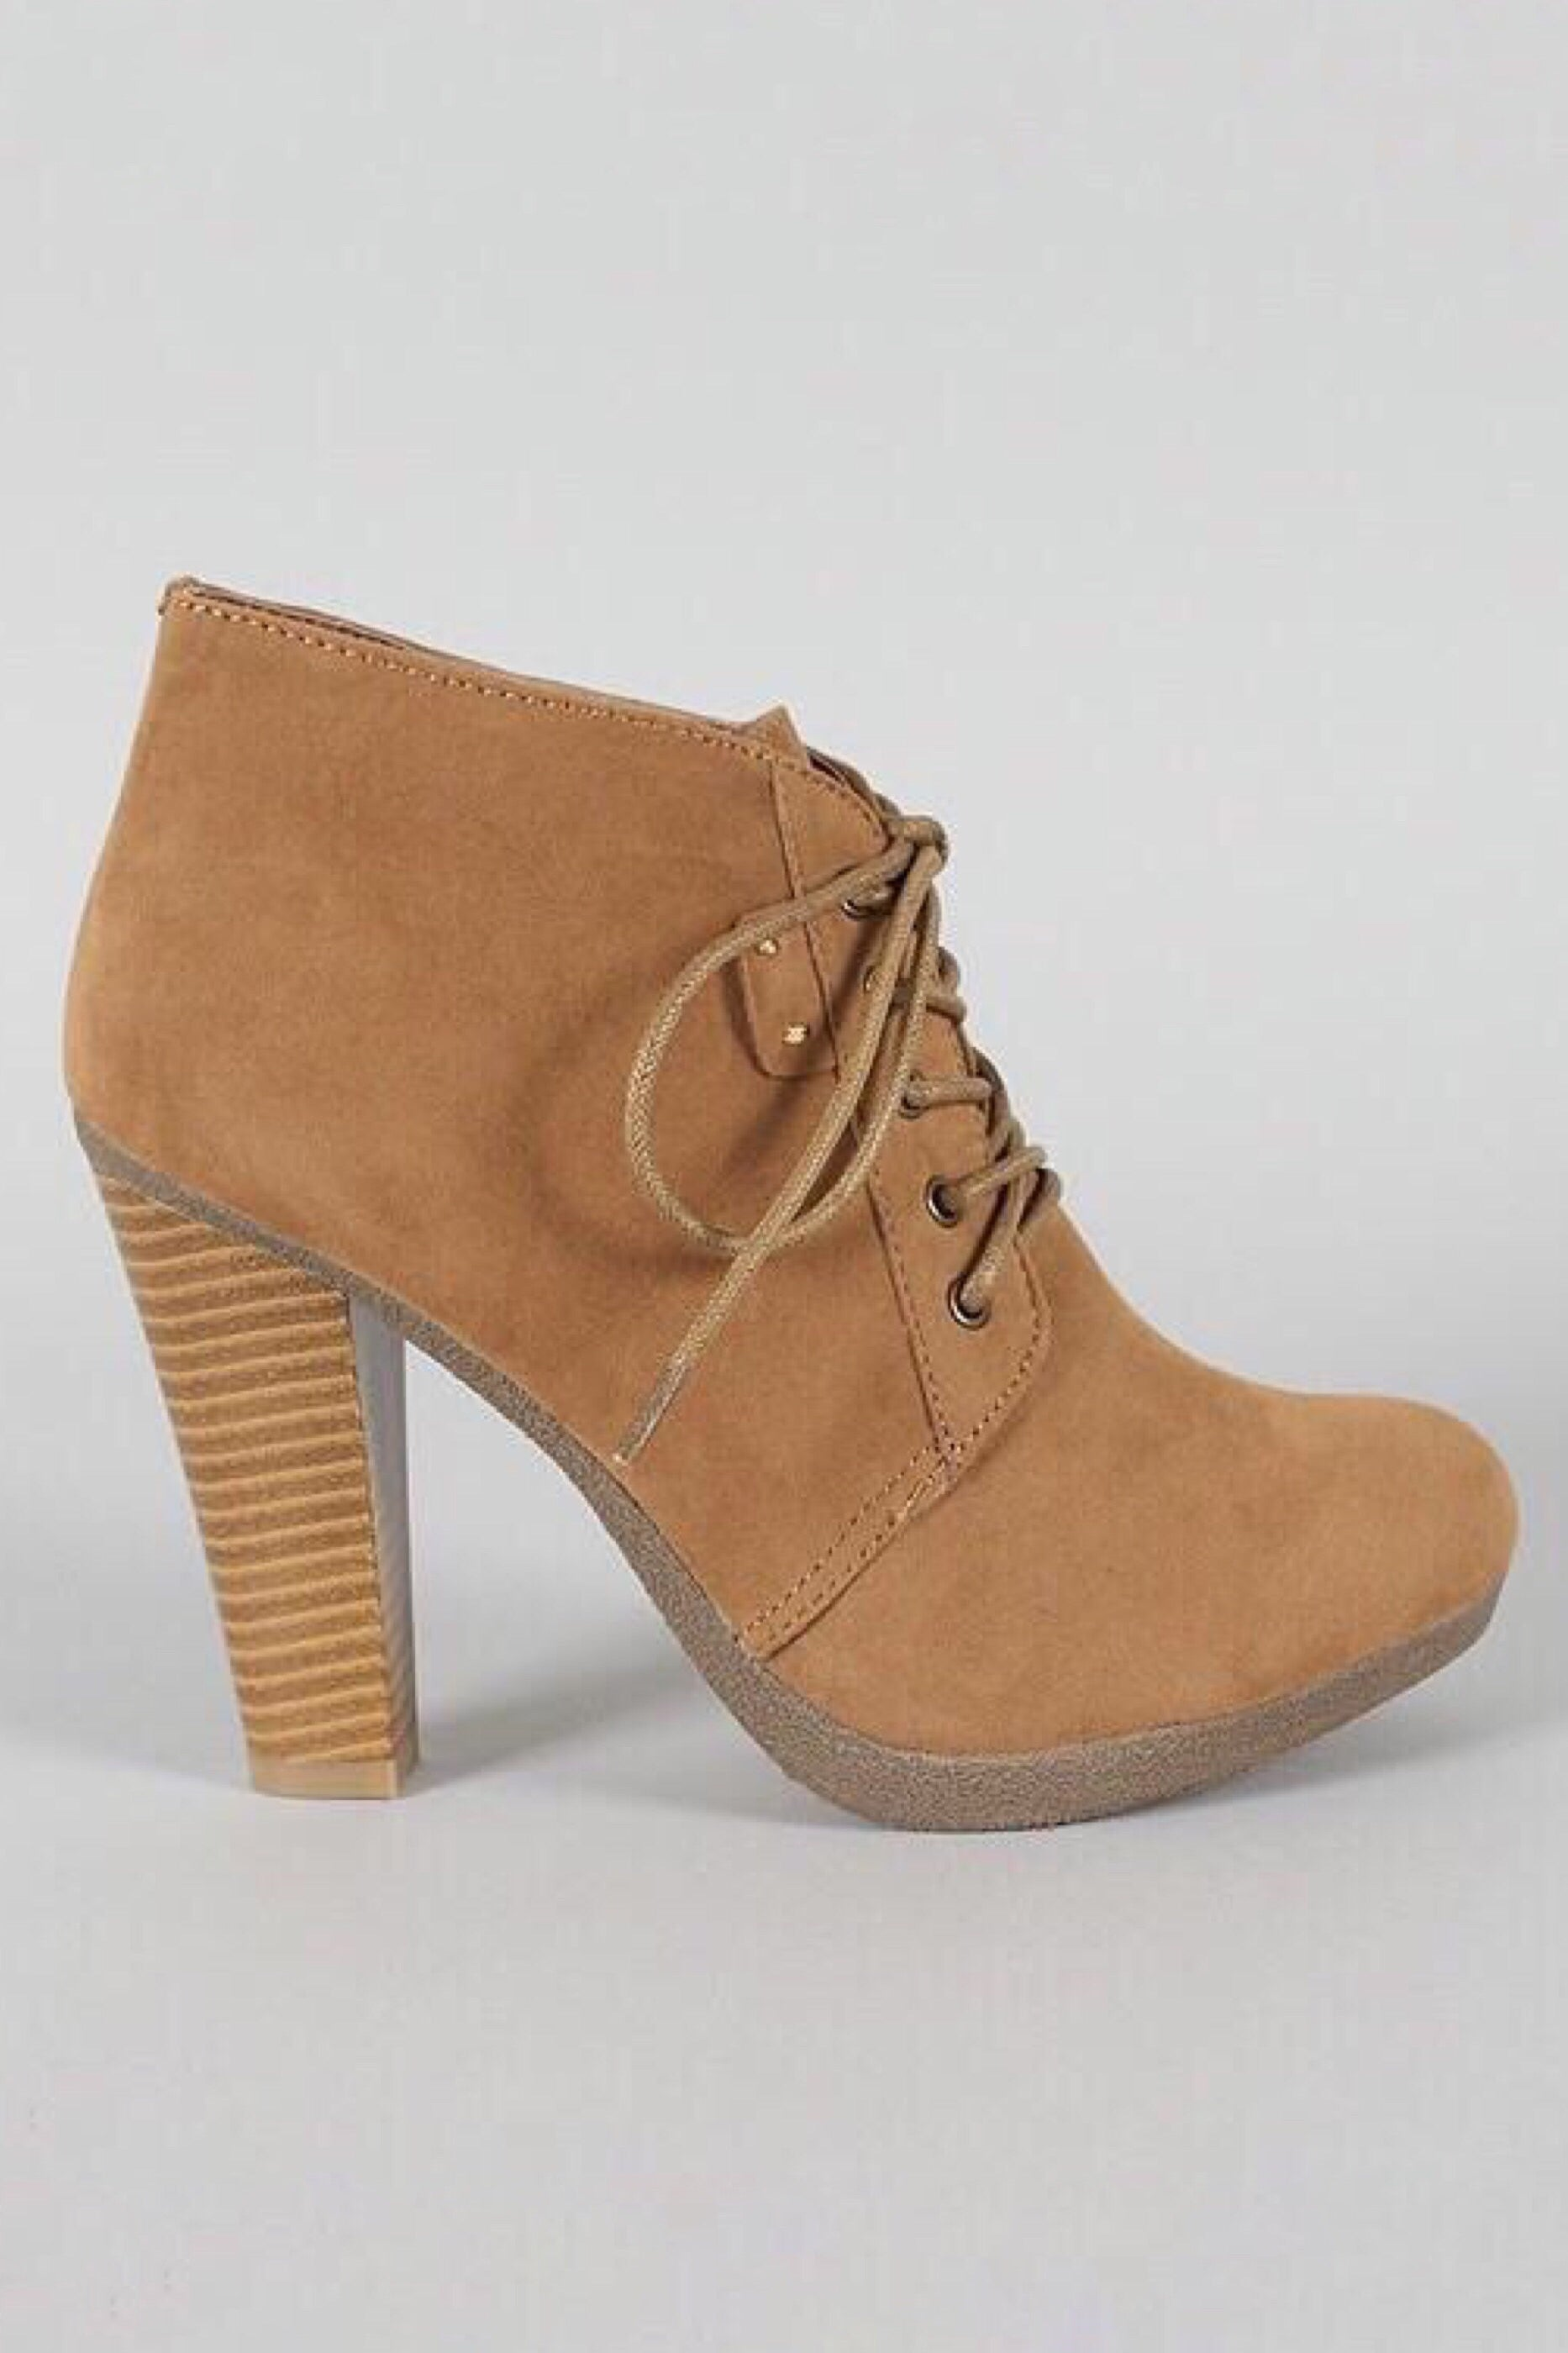 Otis tie up Ankle natural booties